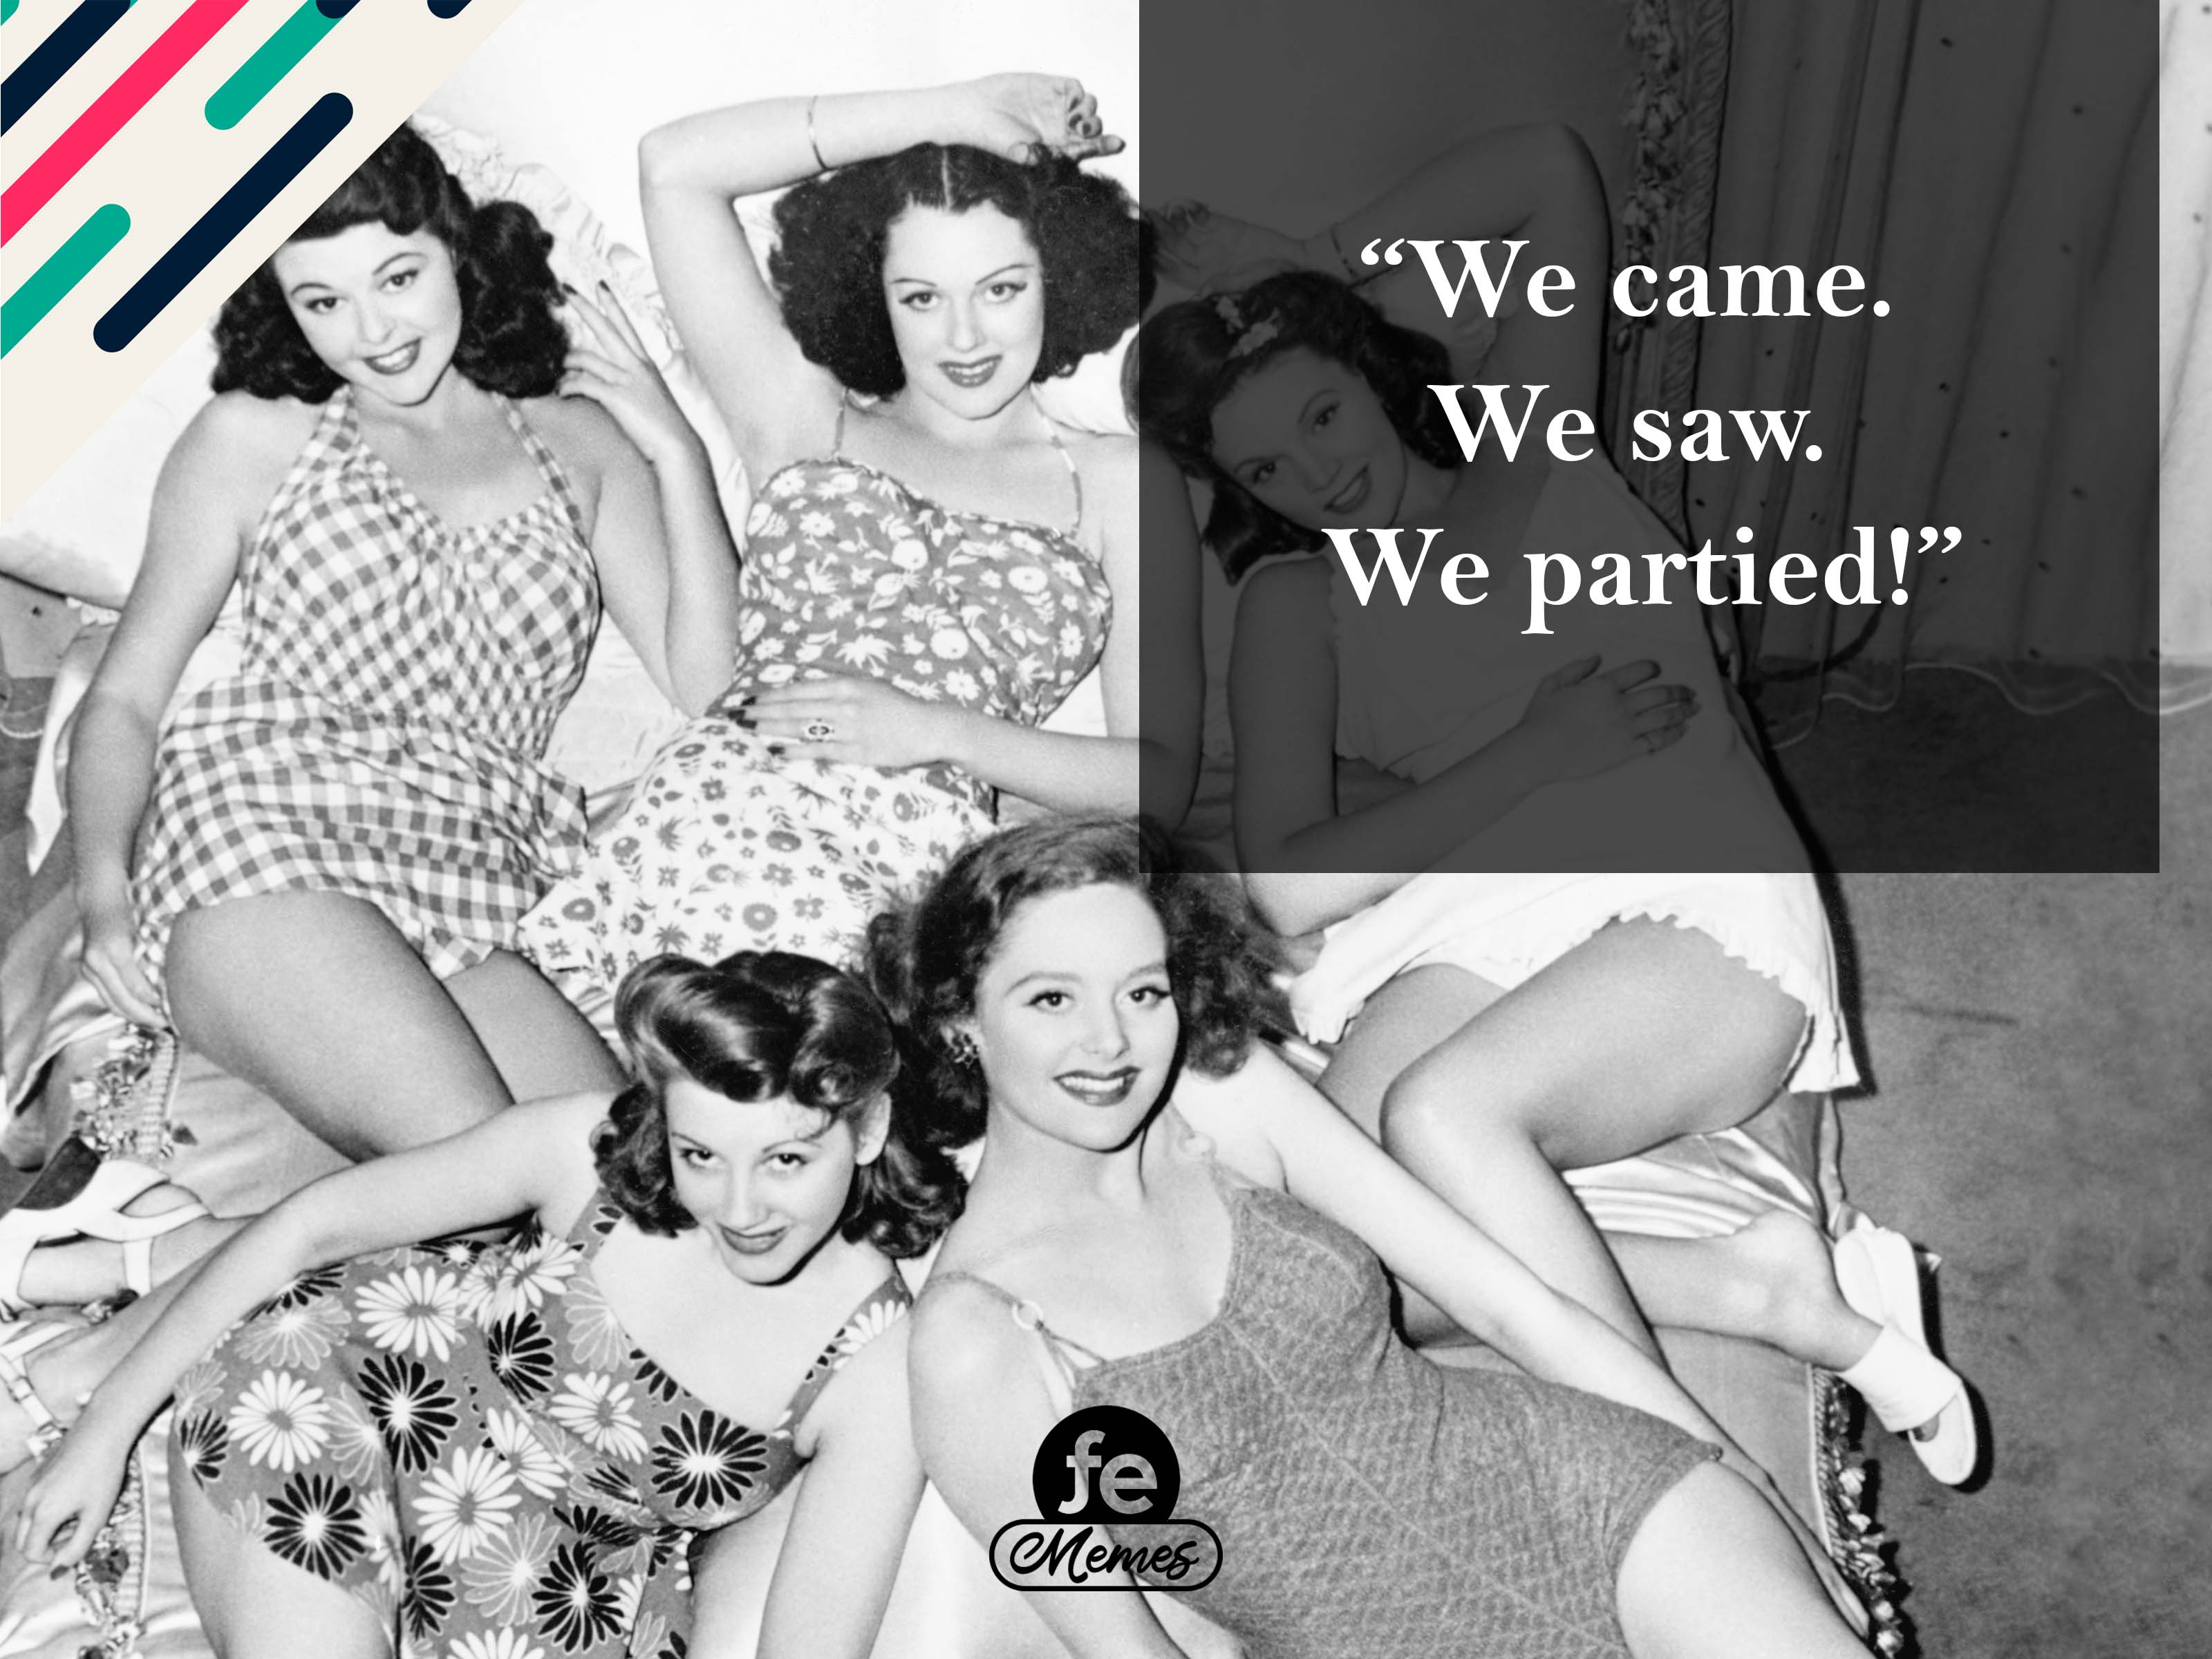 We came. We saw. We partied! - Meme 11